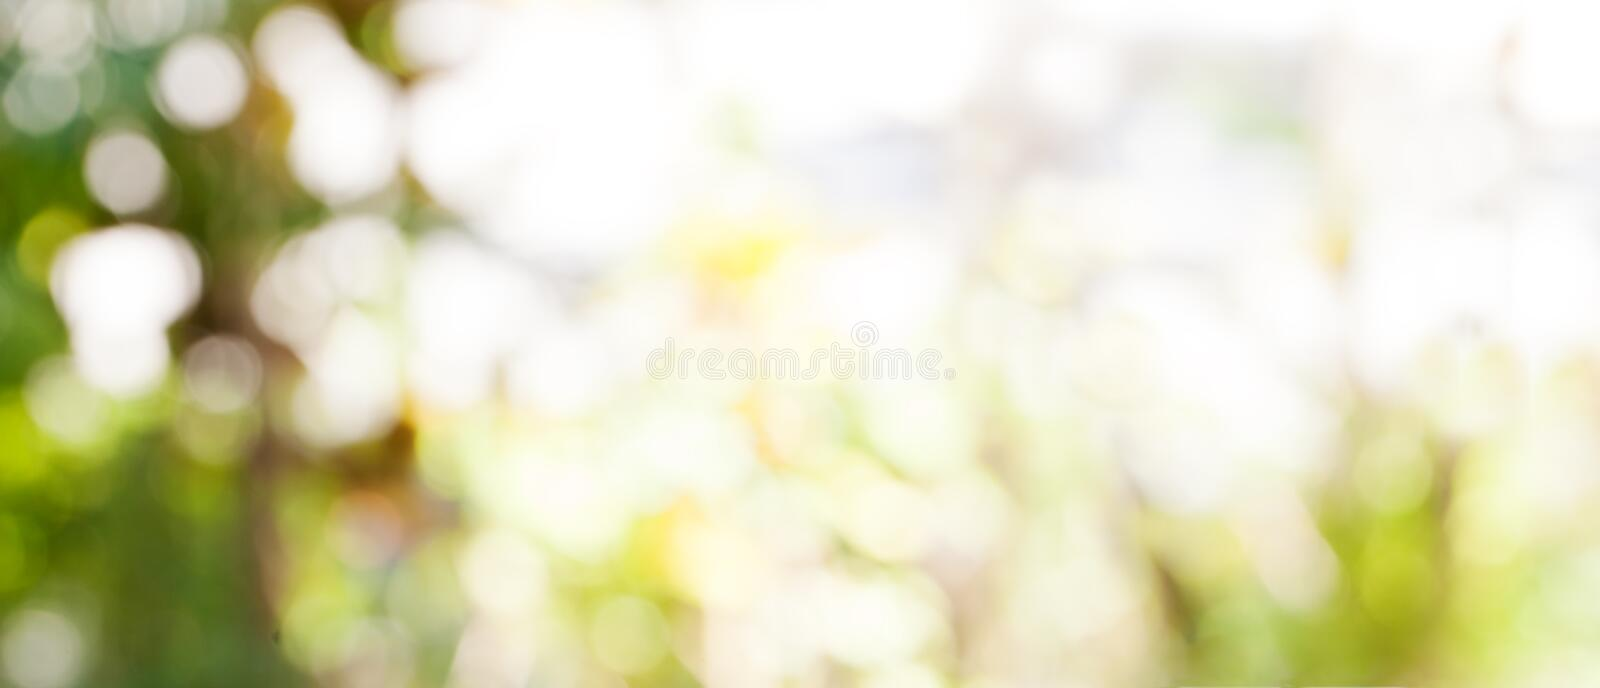 Abstract nature bokeh background Golden heaven light Blurred background from nature stock photography